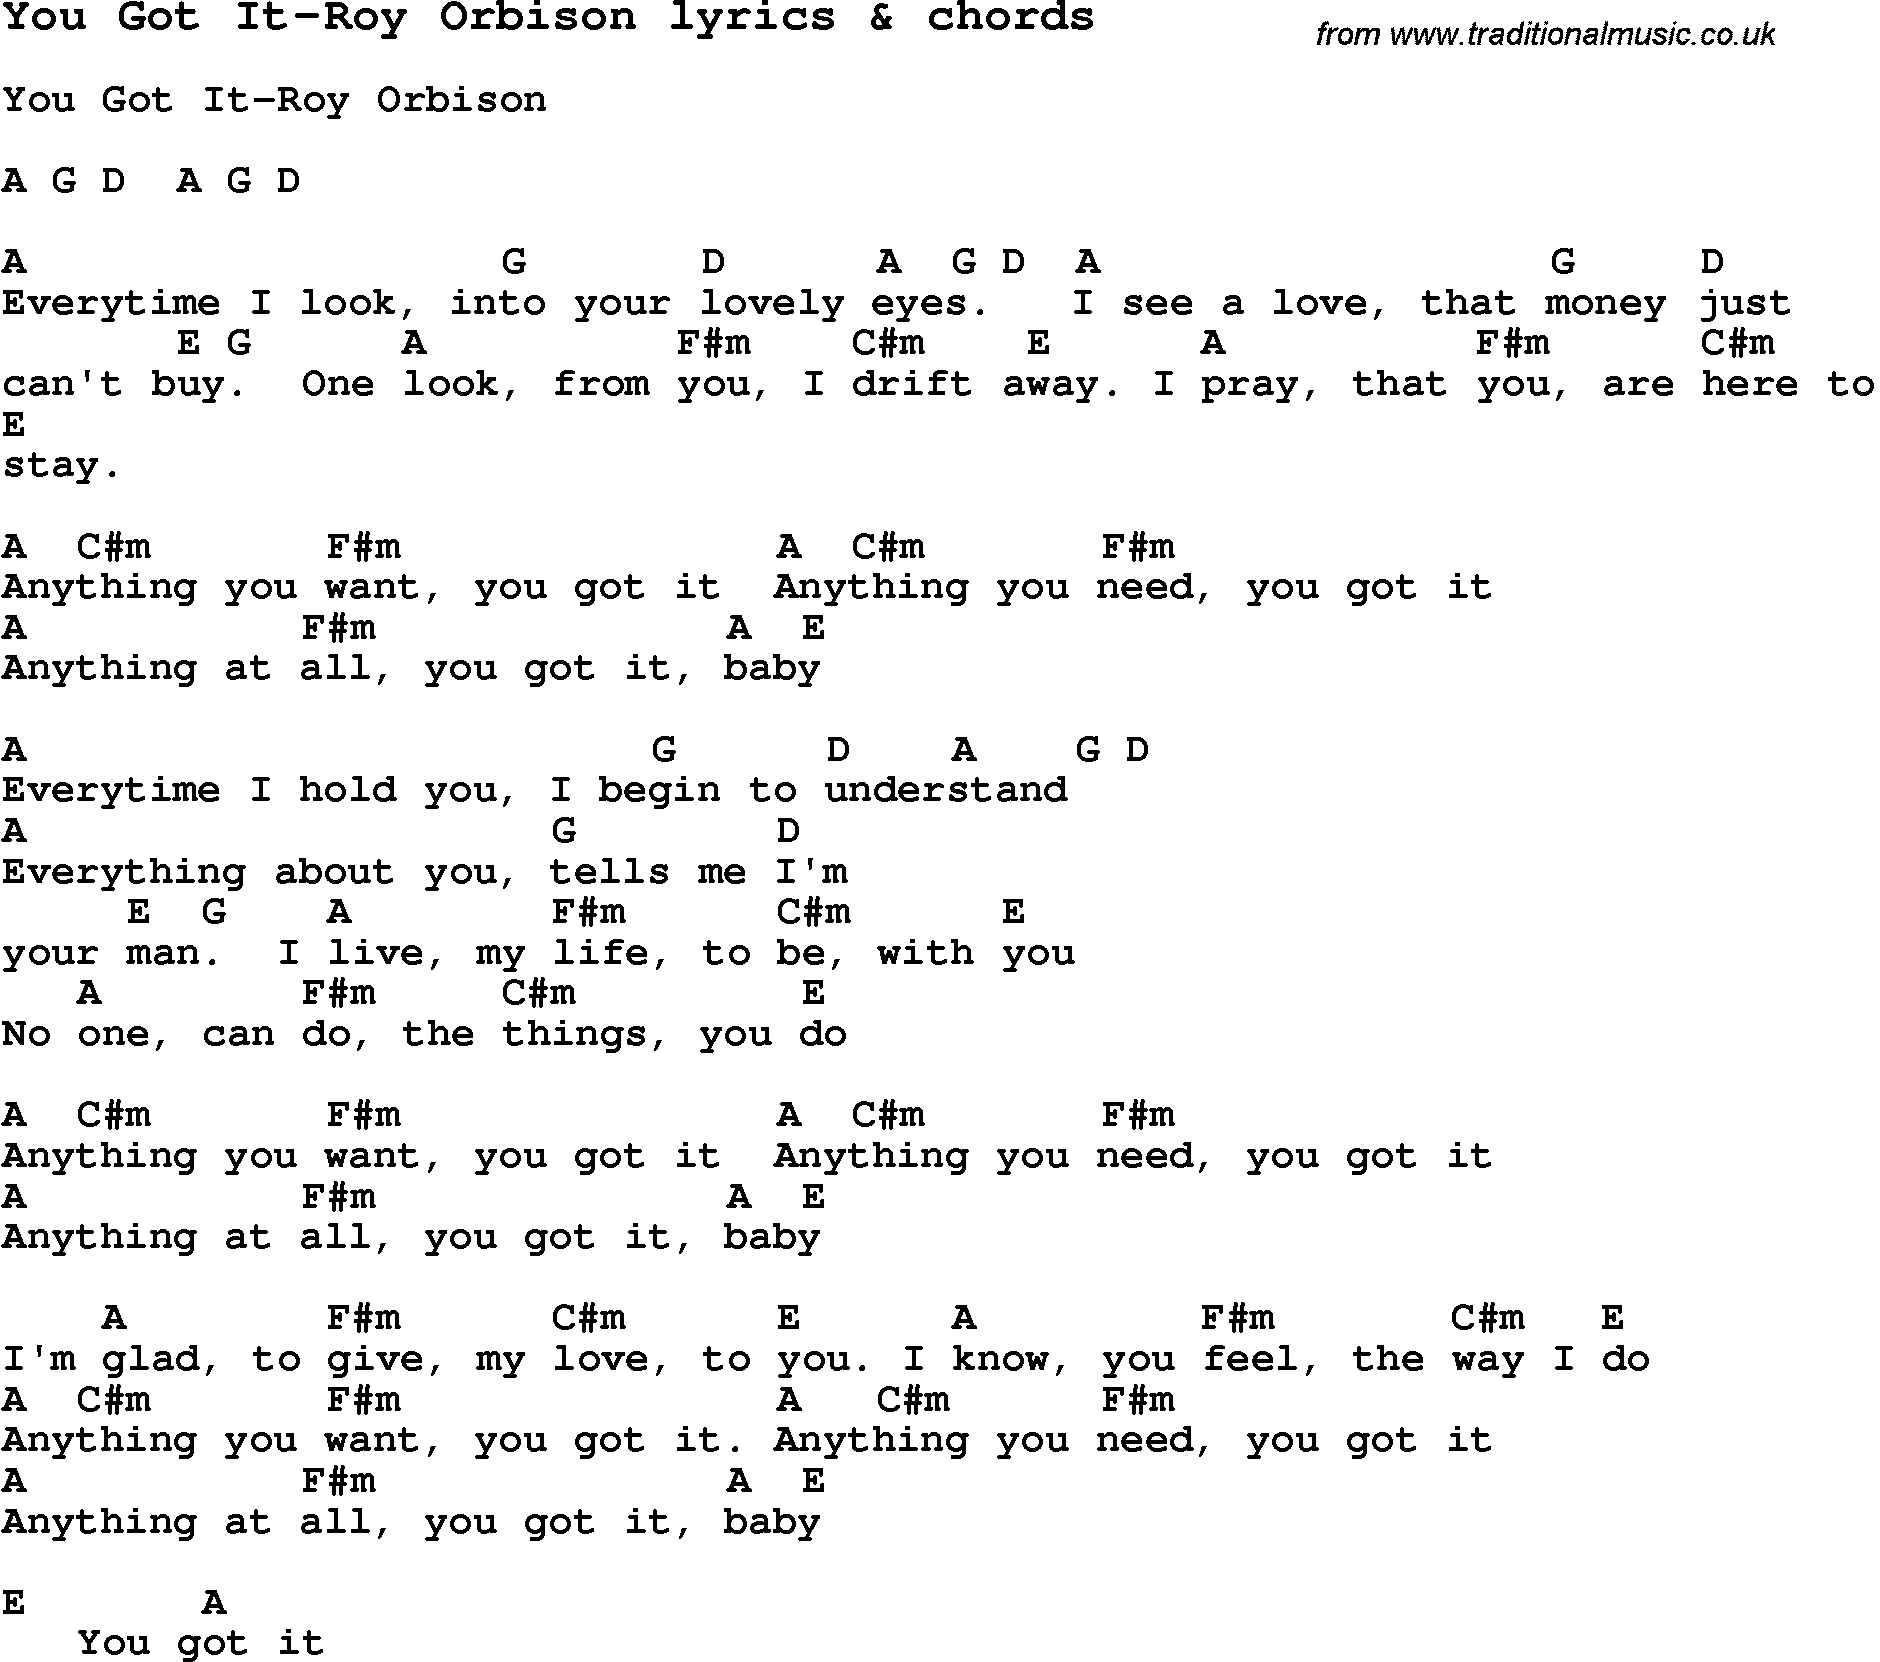 Love Song Lyrics For You Got It Roy Orbison With Chords For Ukulele